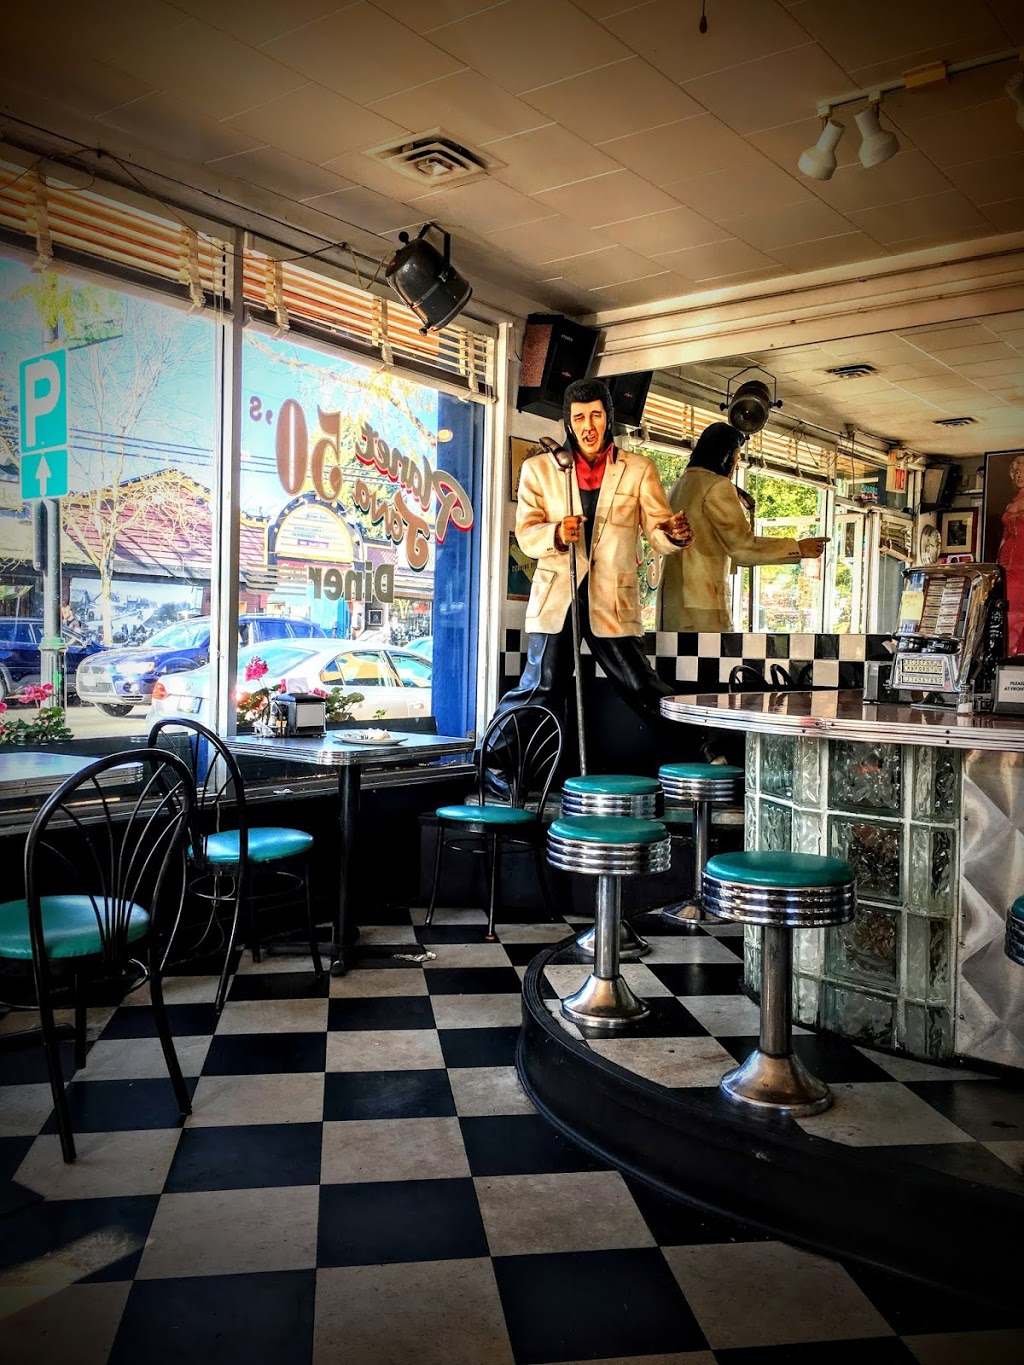 Planet Java Fifties Cafe | cafe | 9178 Glover Rd, Langley City, BC V1M, Canada | 6048825057 OR +1 604-882-5057